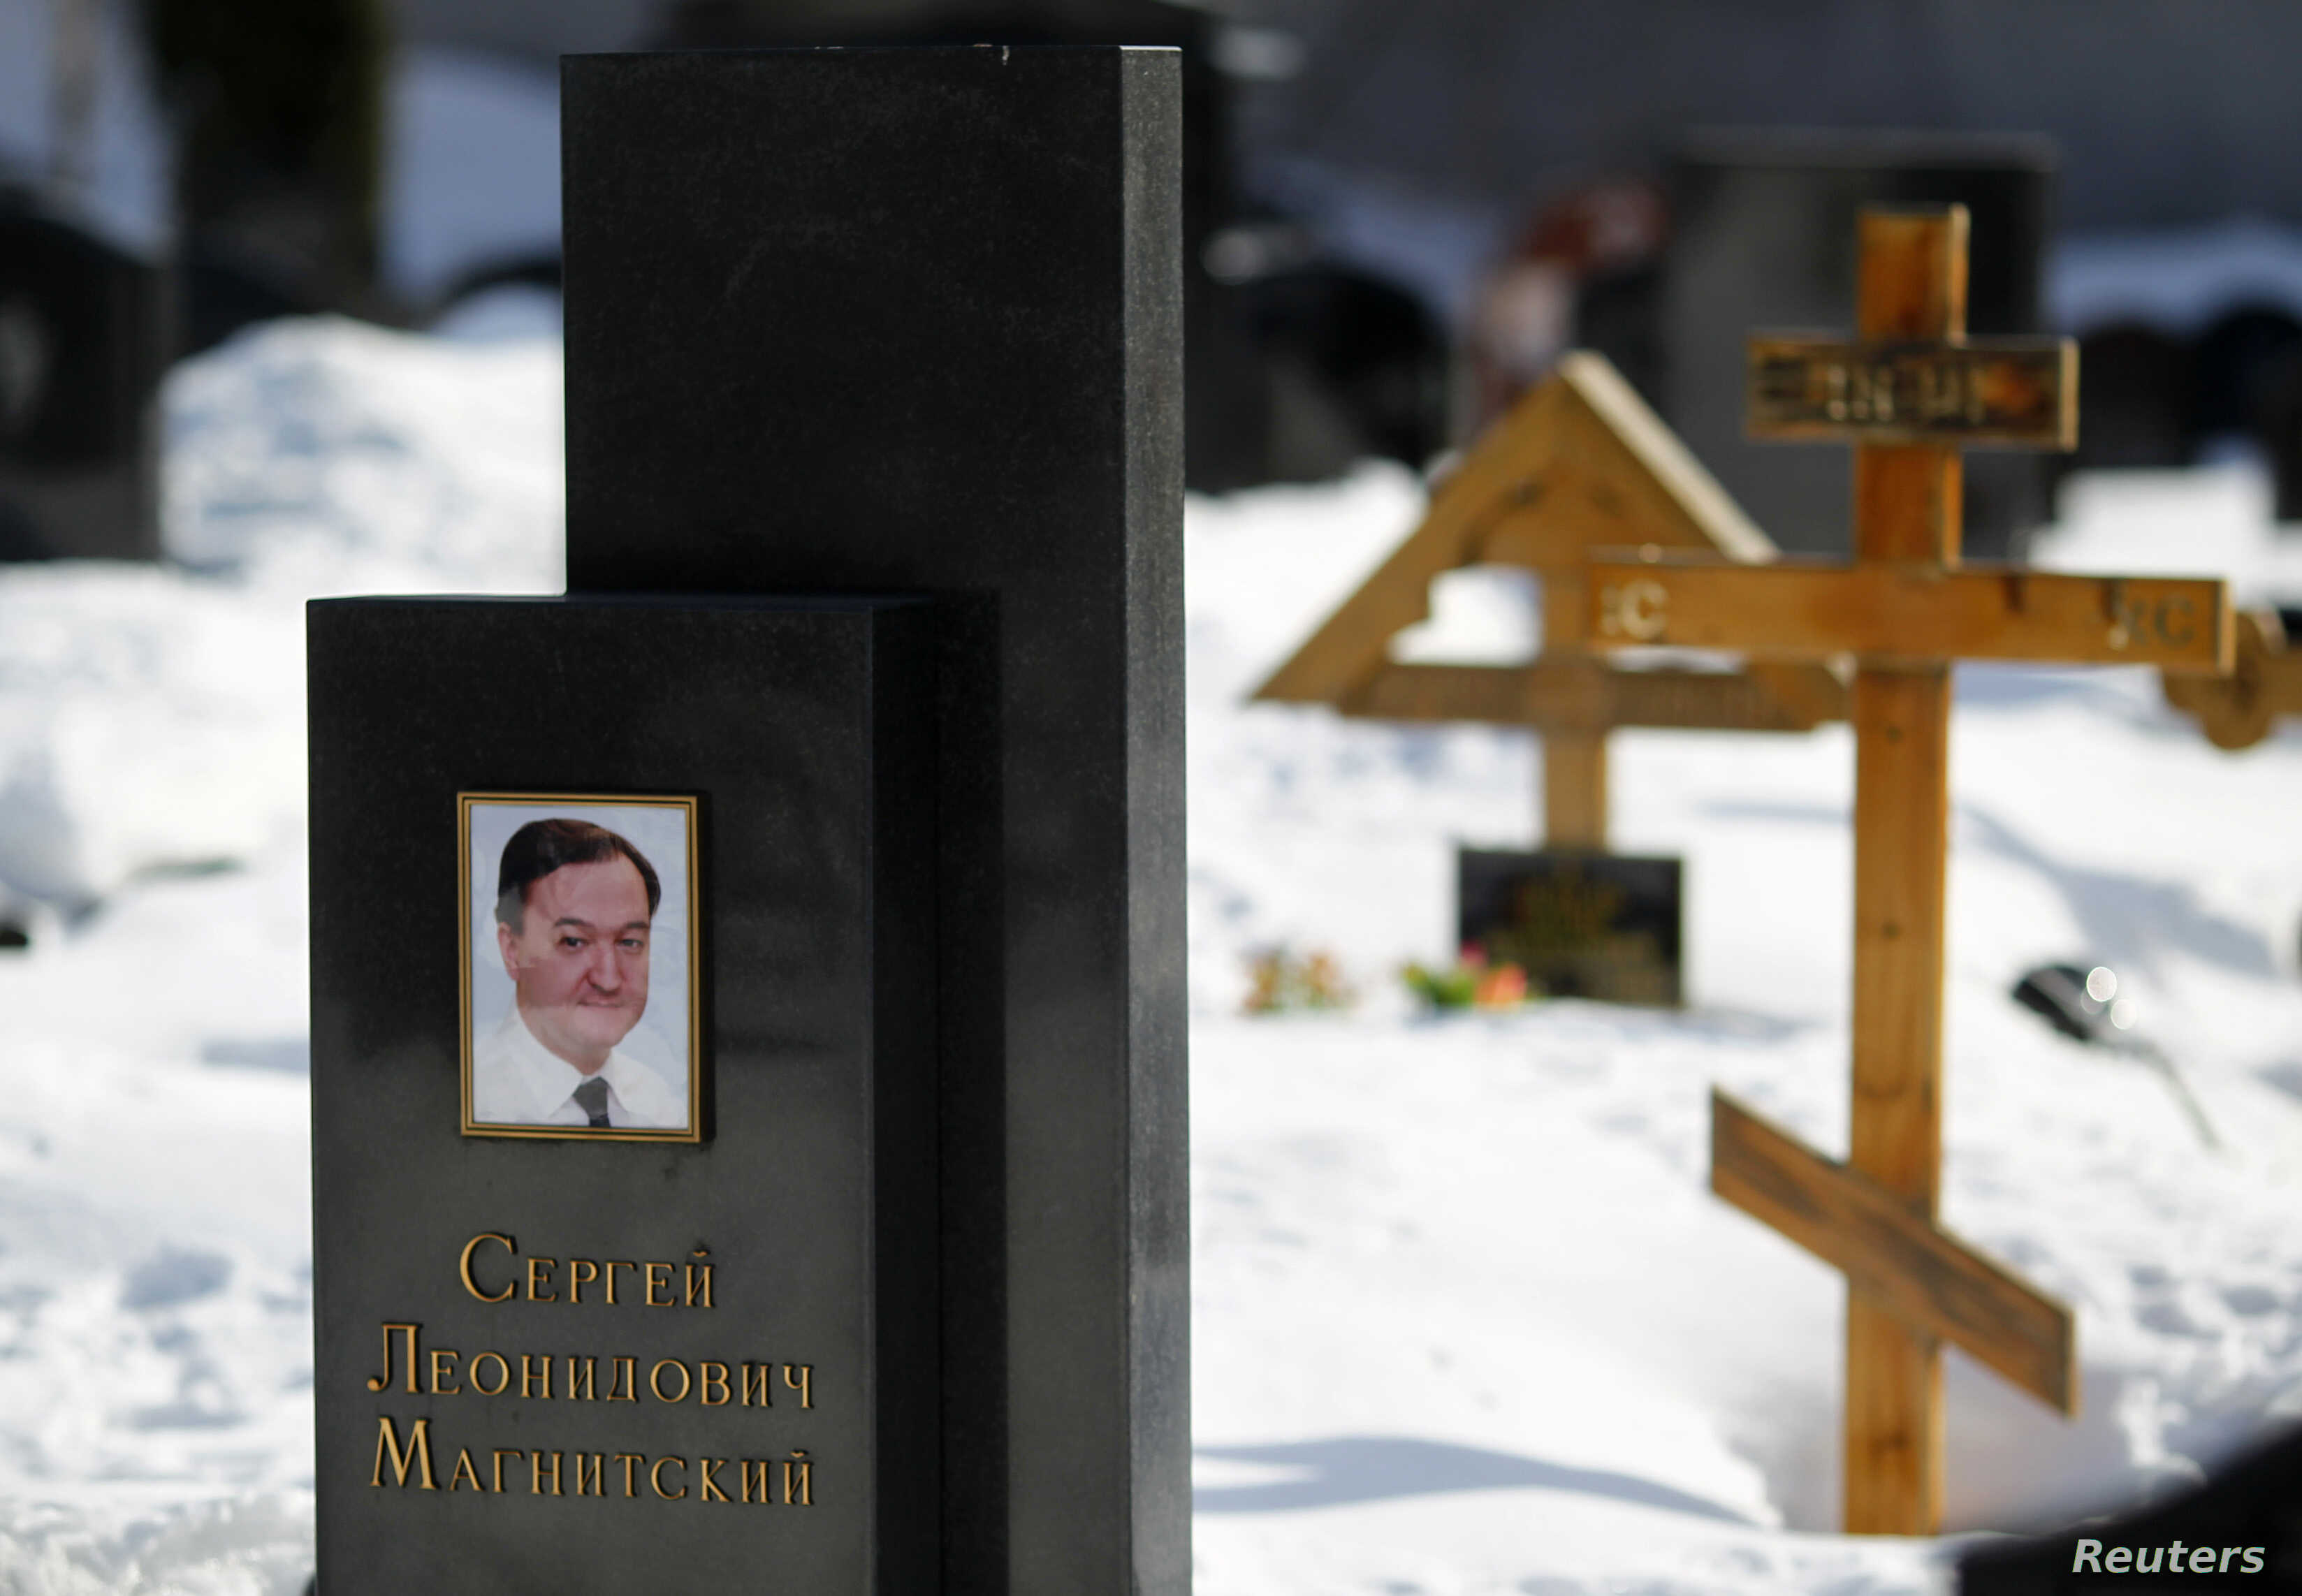 A picture of lawyer Sergei Magnitsky is seen on his grave in the Preobrazhensky cemetery in Moscow March 11, 2013. A Russian court on Monday postponed until March 22 the start of the posthumous trial of a whistleblowing lawyer, Magnitsky, which human...